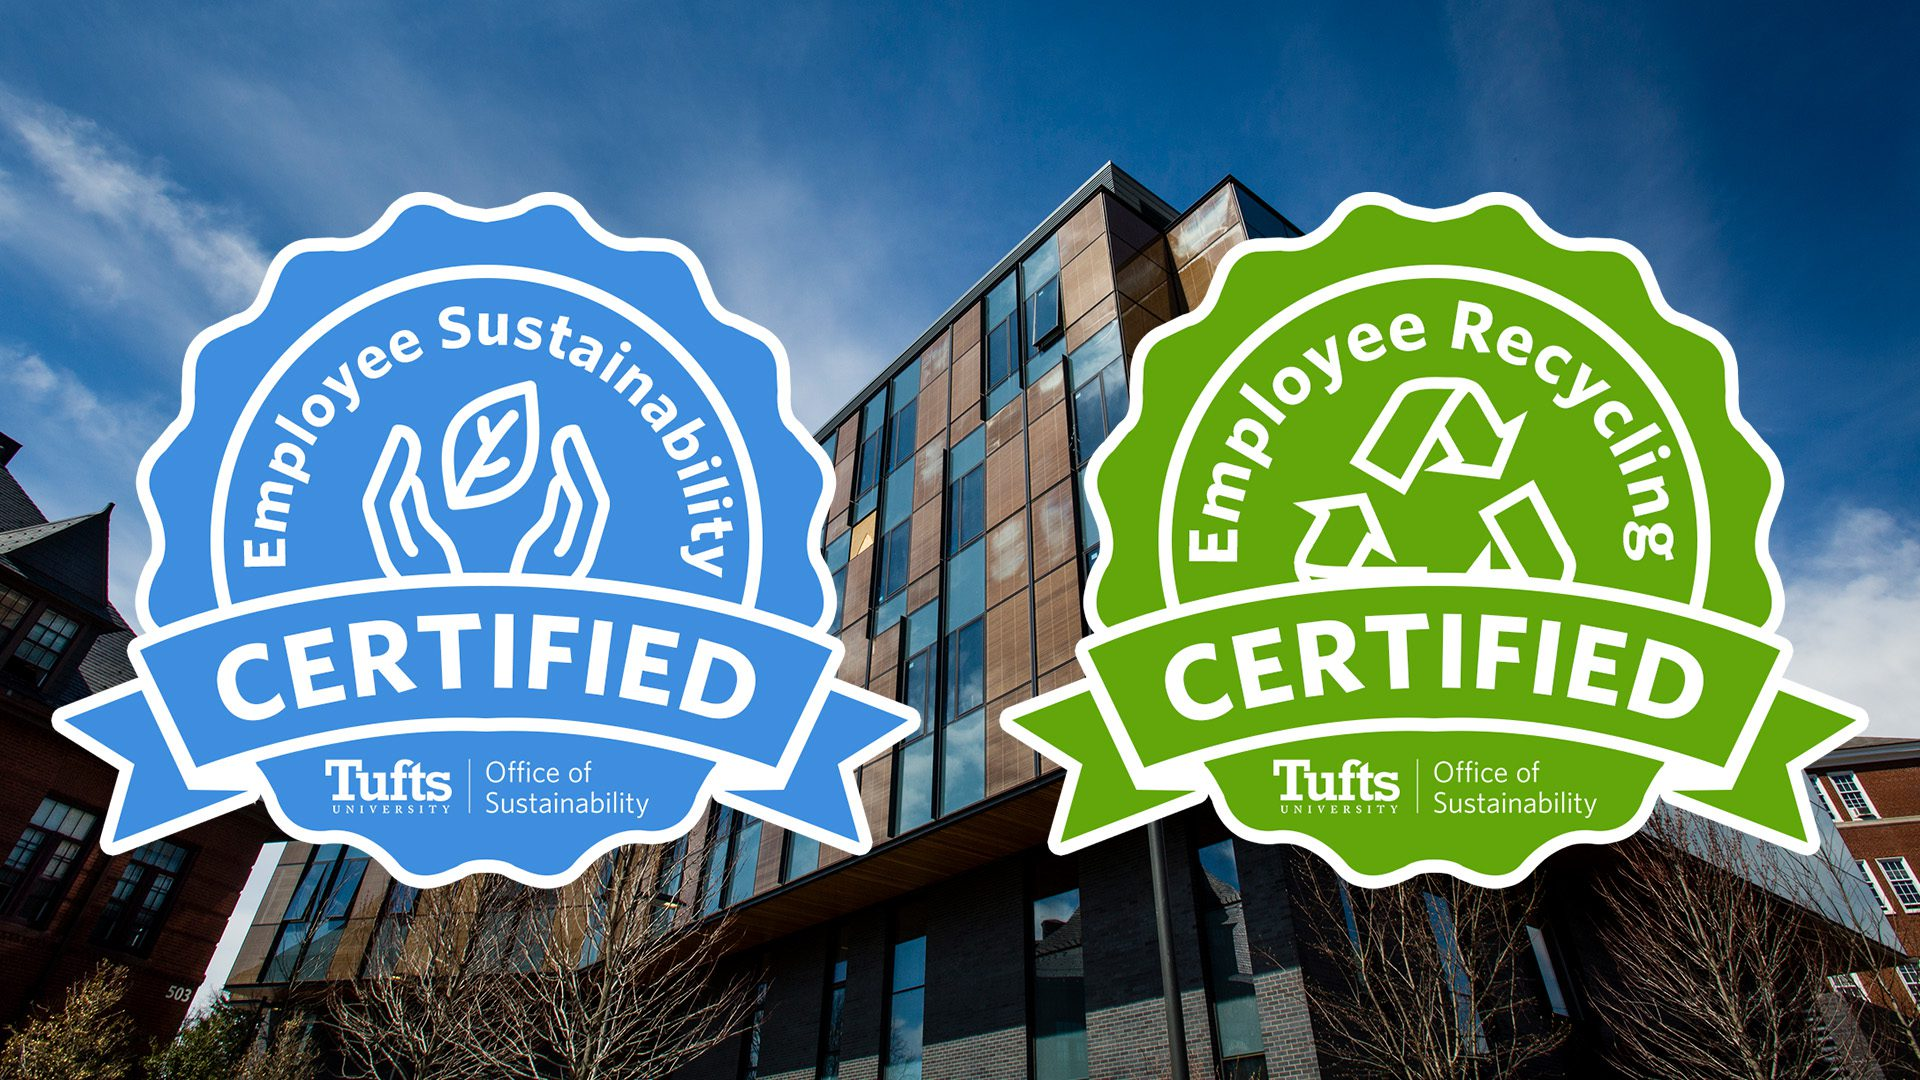 [NEW] Employee Sustainability and Recycling Training